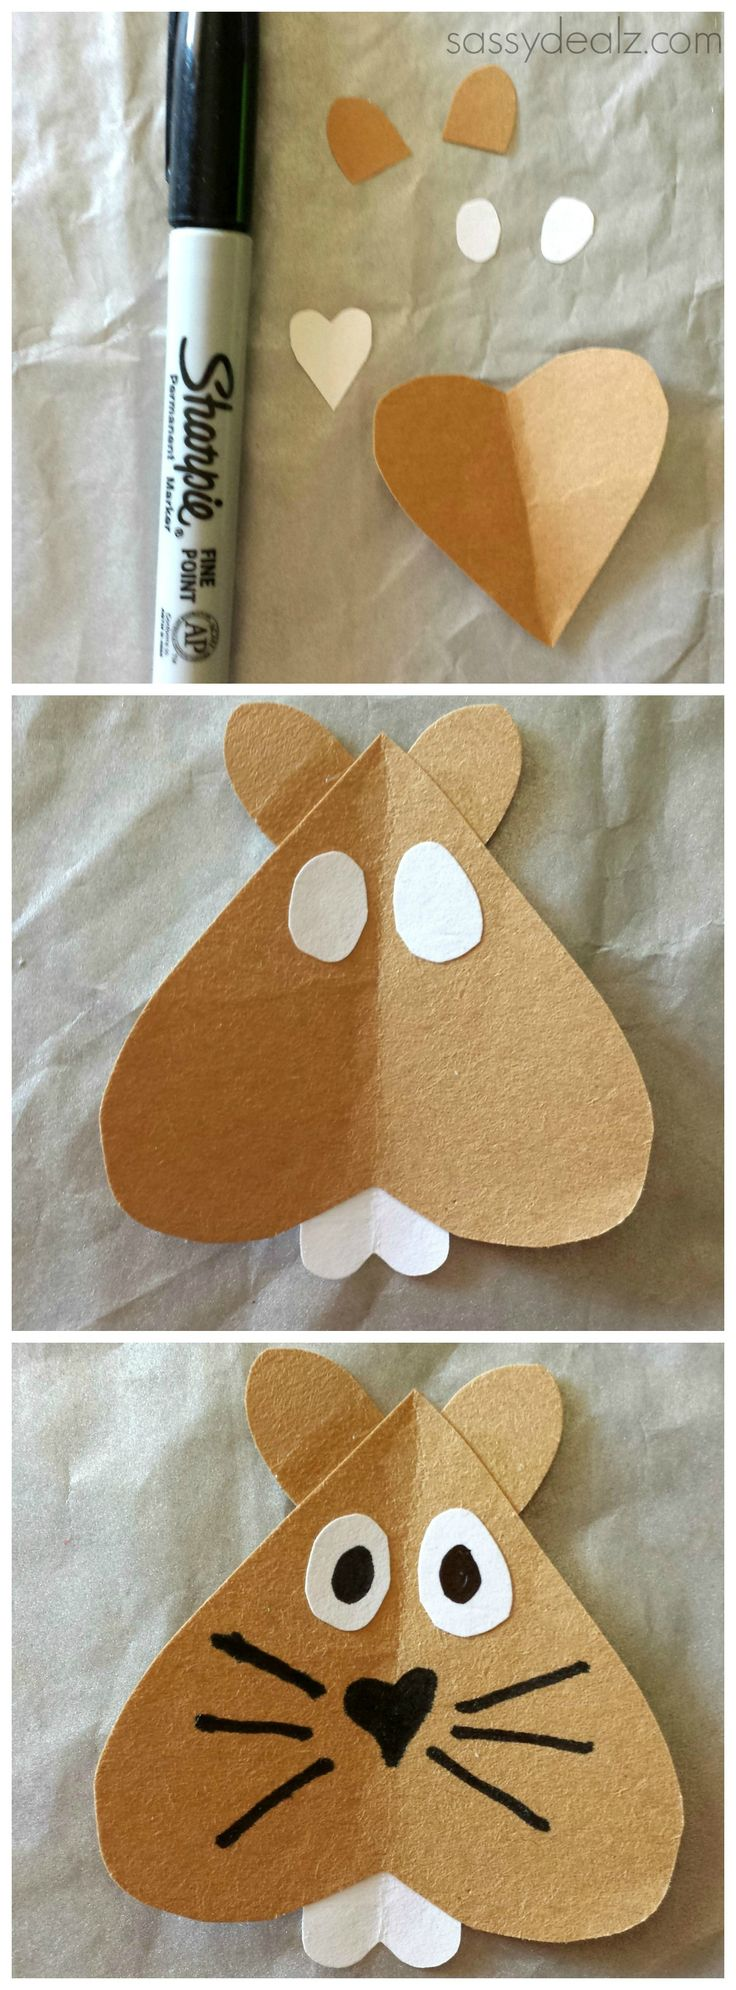 Groundhog craft for kids! #Groundhogs day art project #Groundhog face #Shadow | CraftyMorning.com